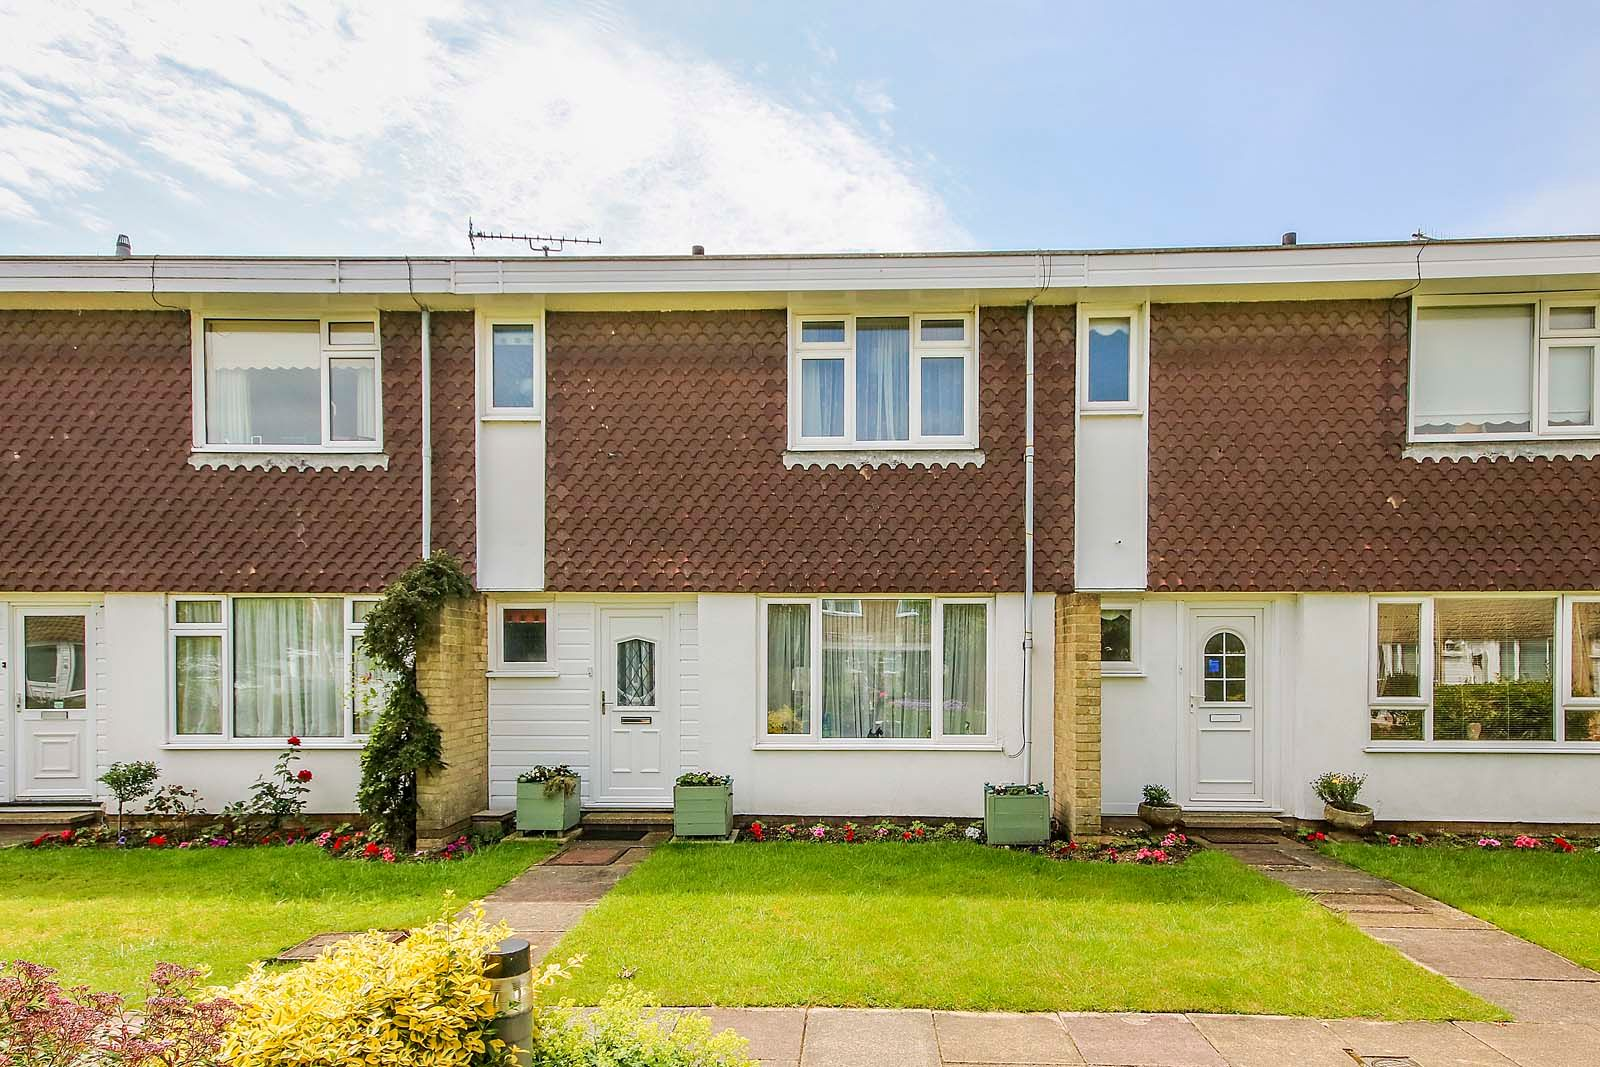 3 bed house for sale in Arundel Garden - Property Image 1